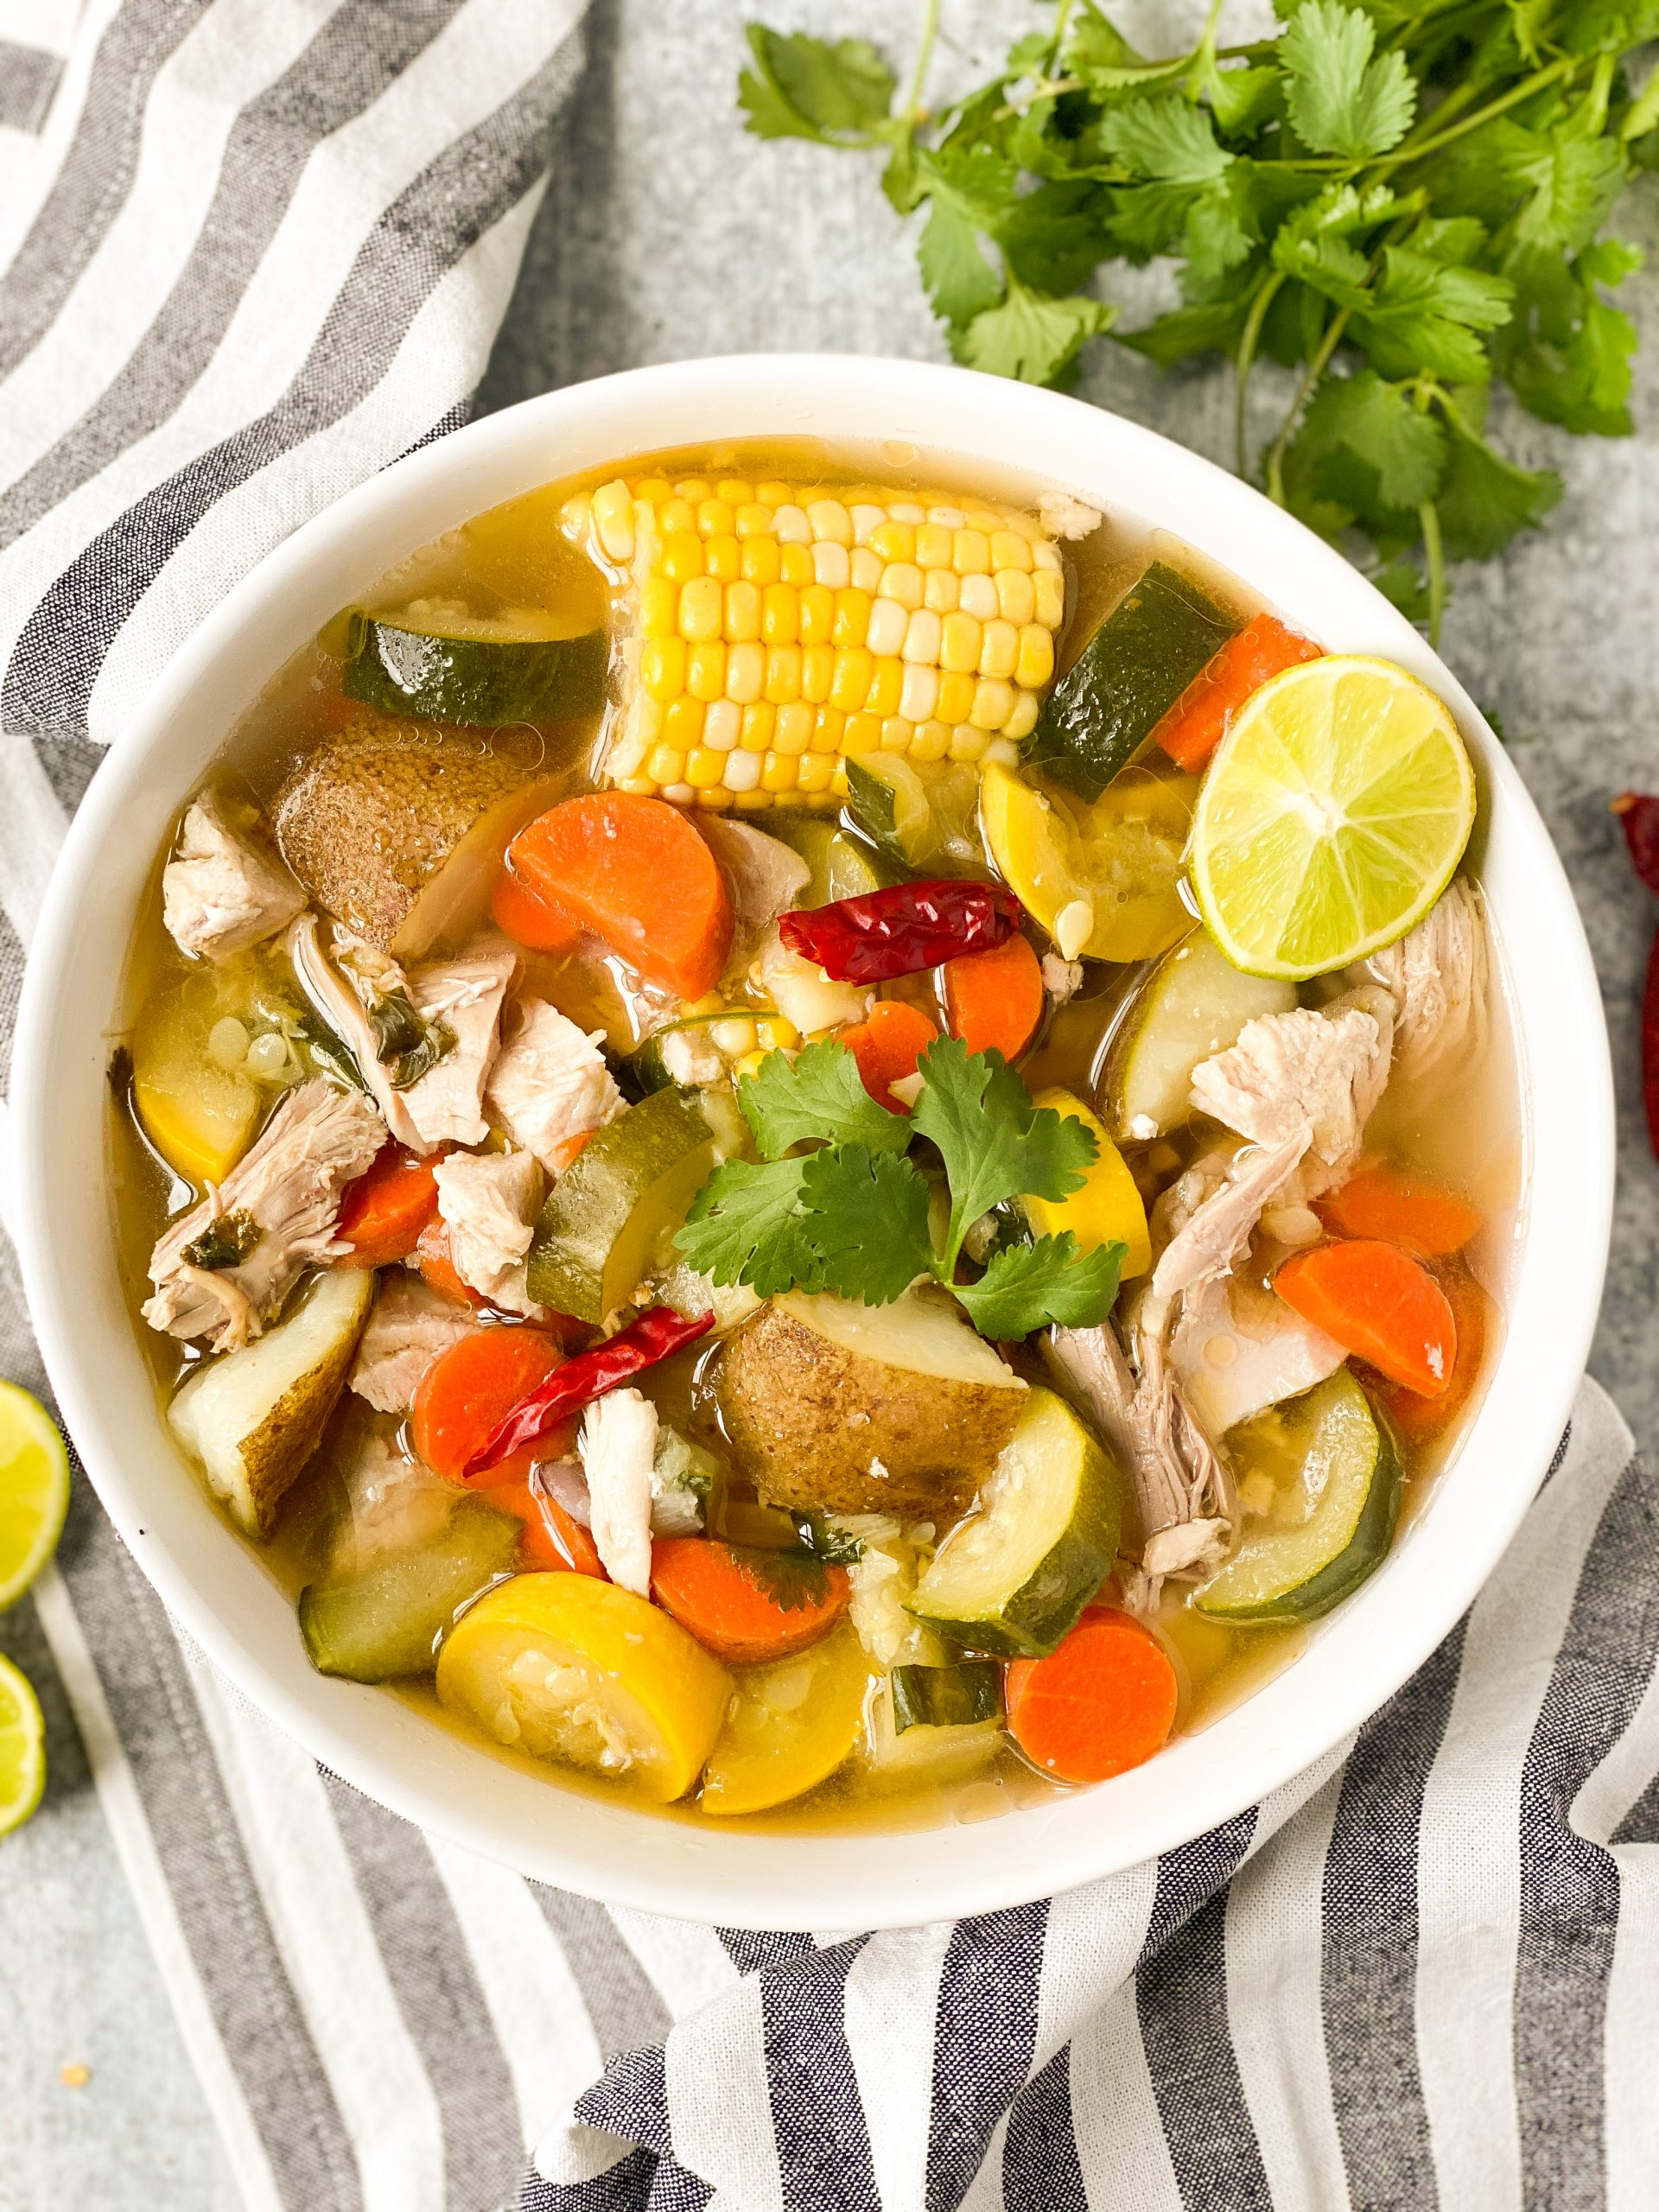 White bowl with caldo de pollo, mexican chicken soup. Includes potatoes, zucchini, carrots, and corn. Striped towel under bowl.